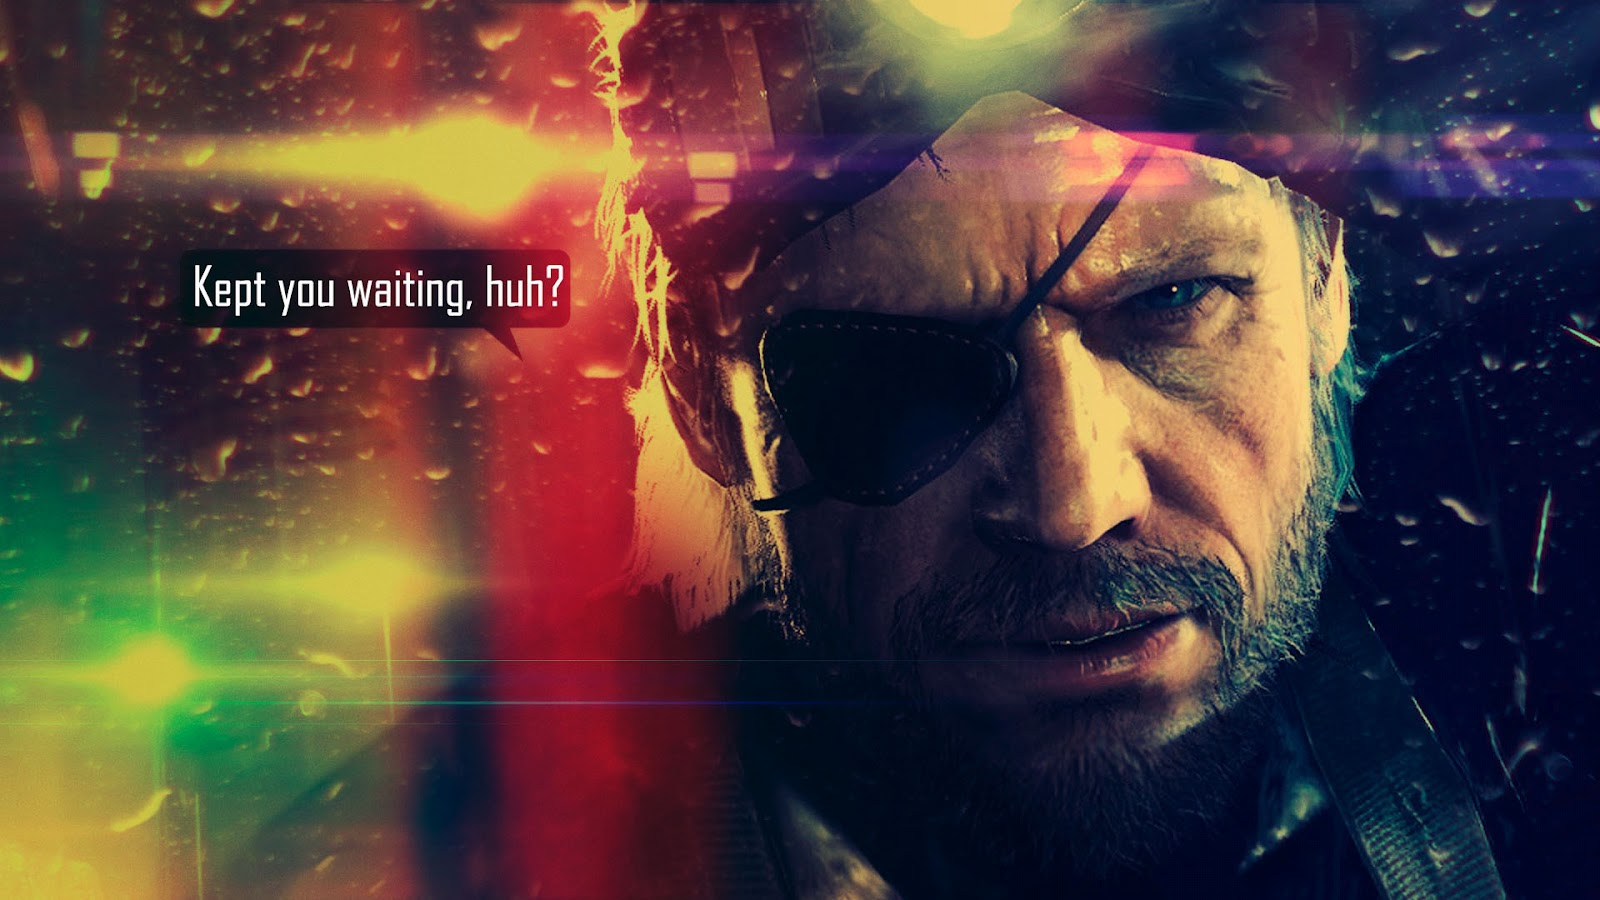 http://4.bp.blogspot.com/-artP8YmuCkE/UG3rwwC-DYI/AAAAAAAAHdM/JfcP7U-jS0c/s1600/hd-games-wallpapers-for-desktop-(1).jpg